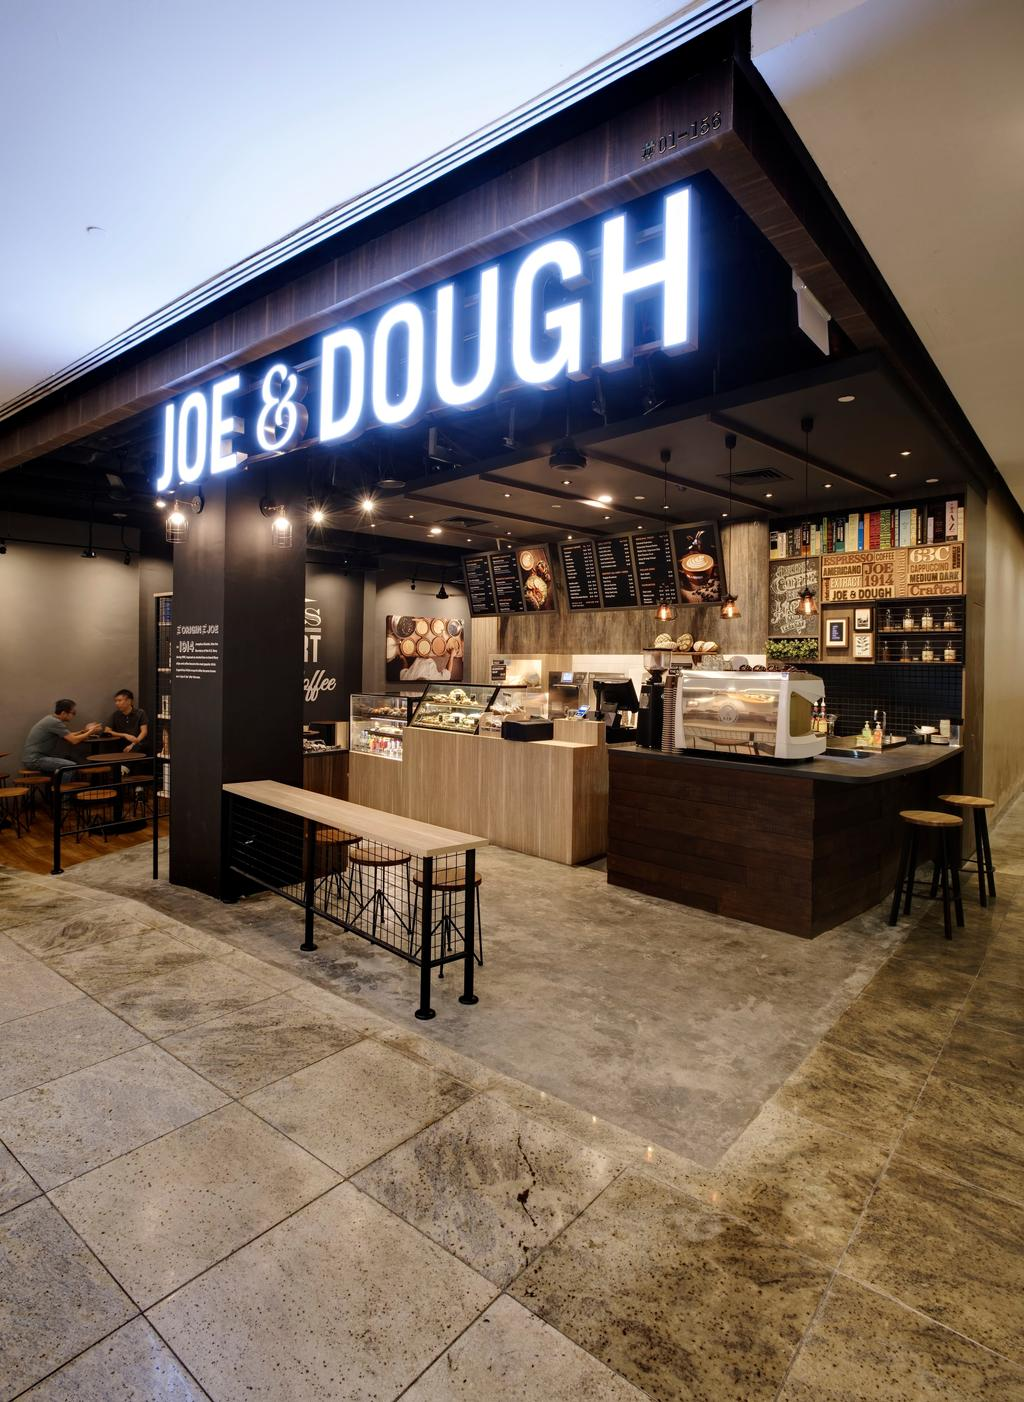 Joe & Dough (Novena), Commercial, Interior Designer, Liid Studio, Industrial, Concrete Floor, Signage, Neon Signage, Hanging Lights, Hanging Lighting, Wooden Table, Display Counter, Chairs, Counter, Appliance, Electrical Device, Oven, Indoors, Interior Design, Kitchen, Room, Flooring